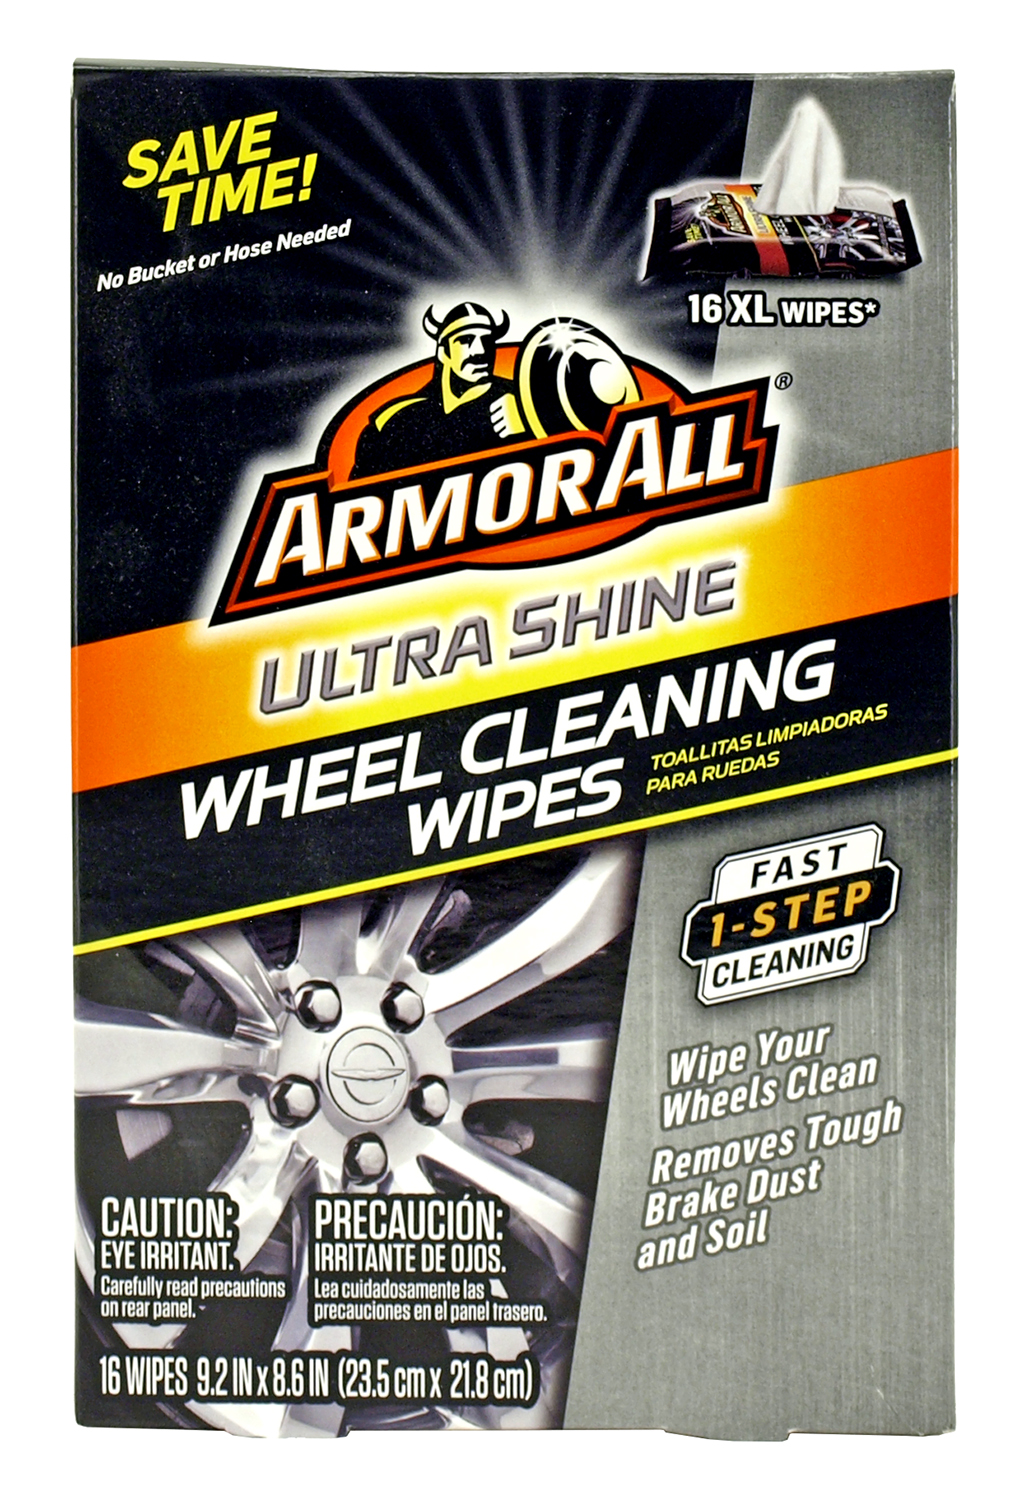 Armor All Ultra Shine Wheel Cleaning Wipes